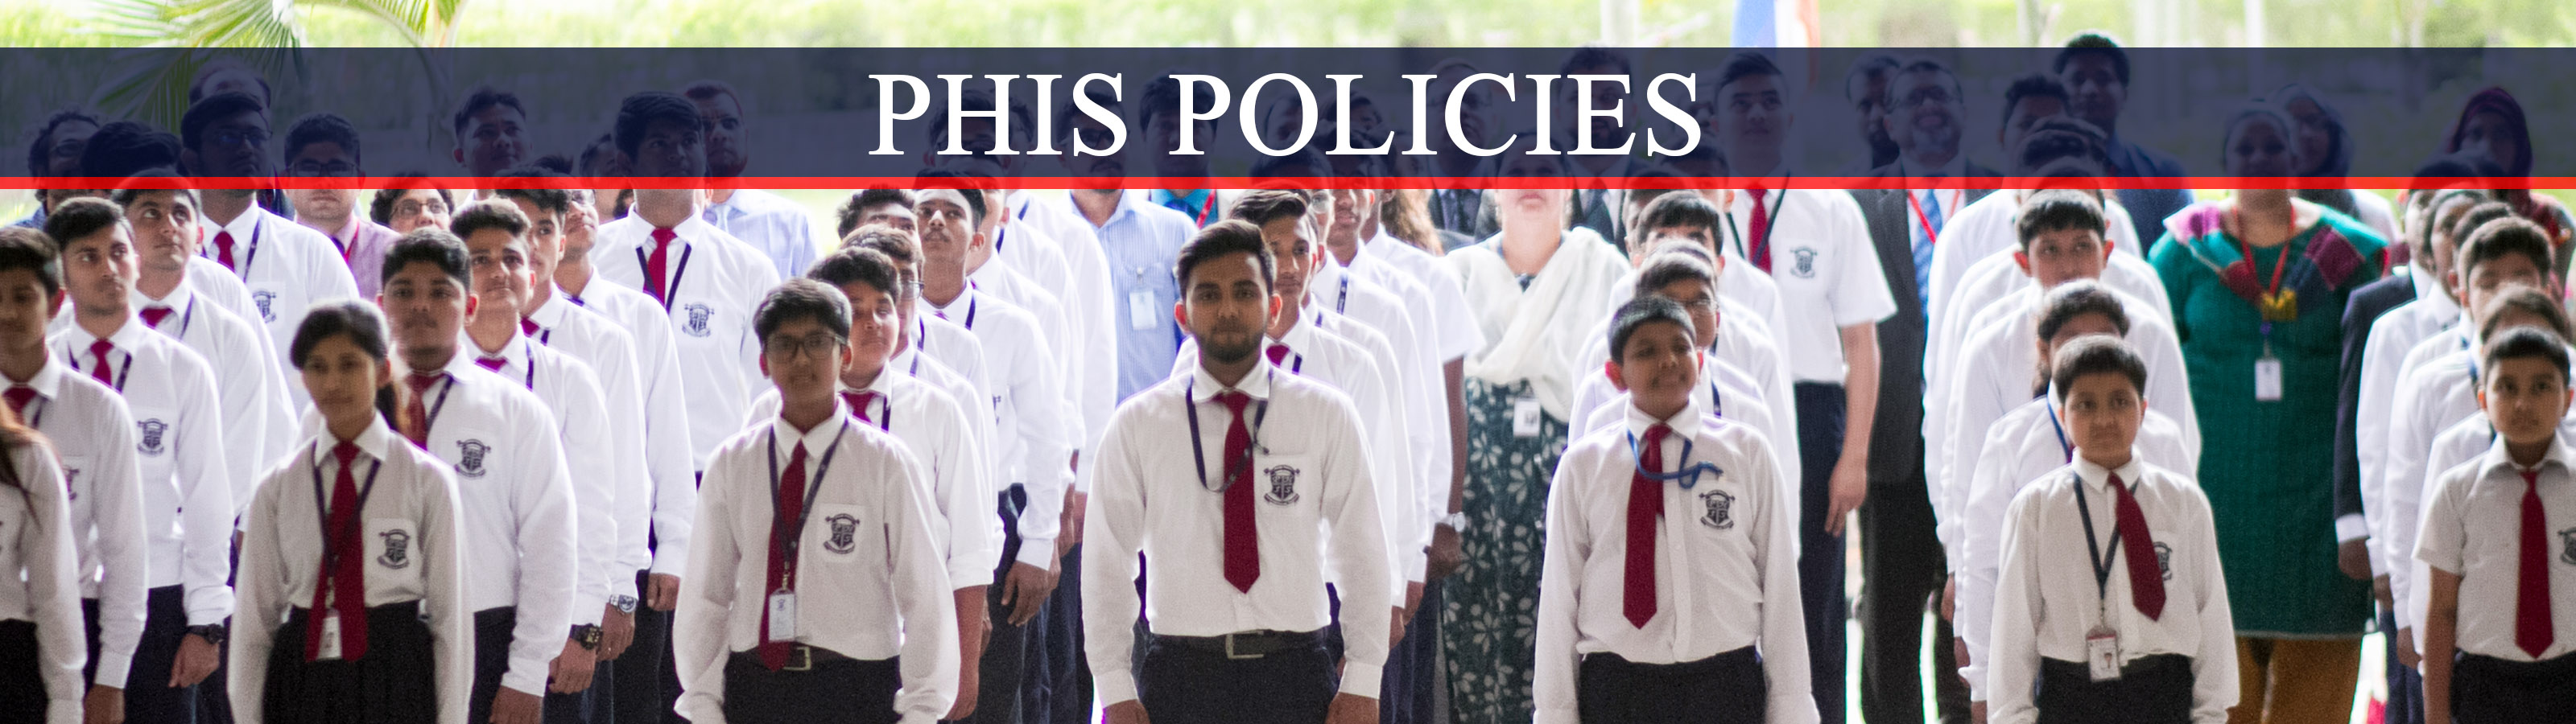 Policies banner